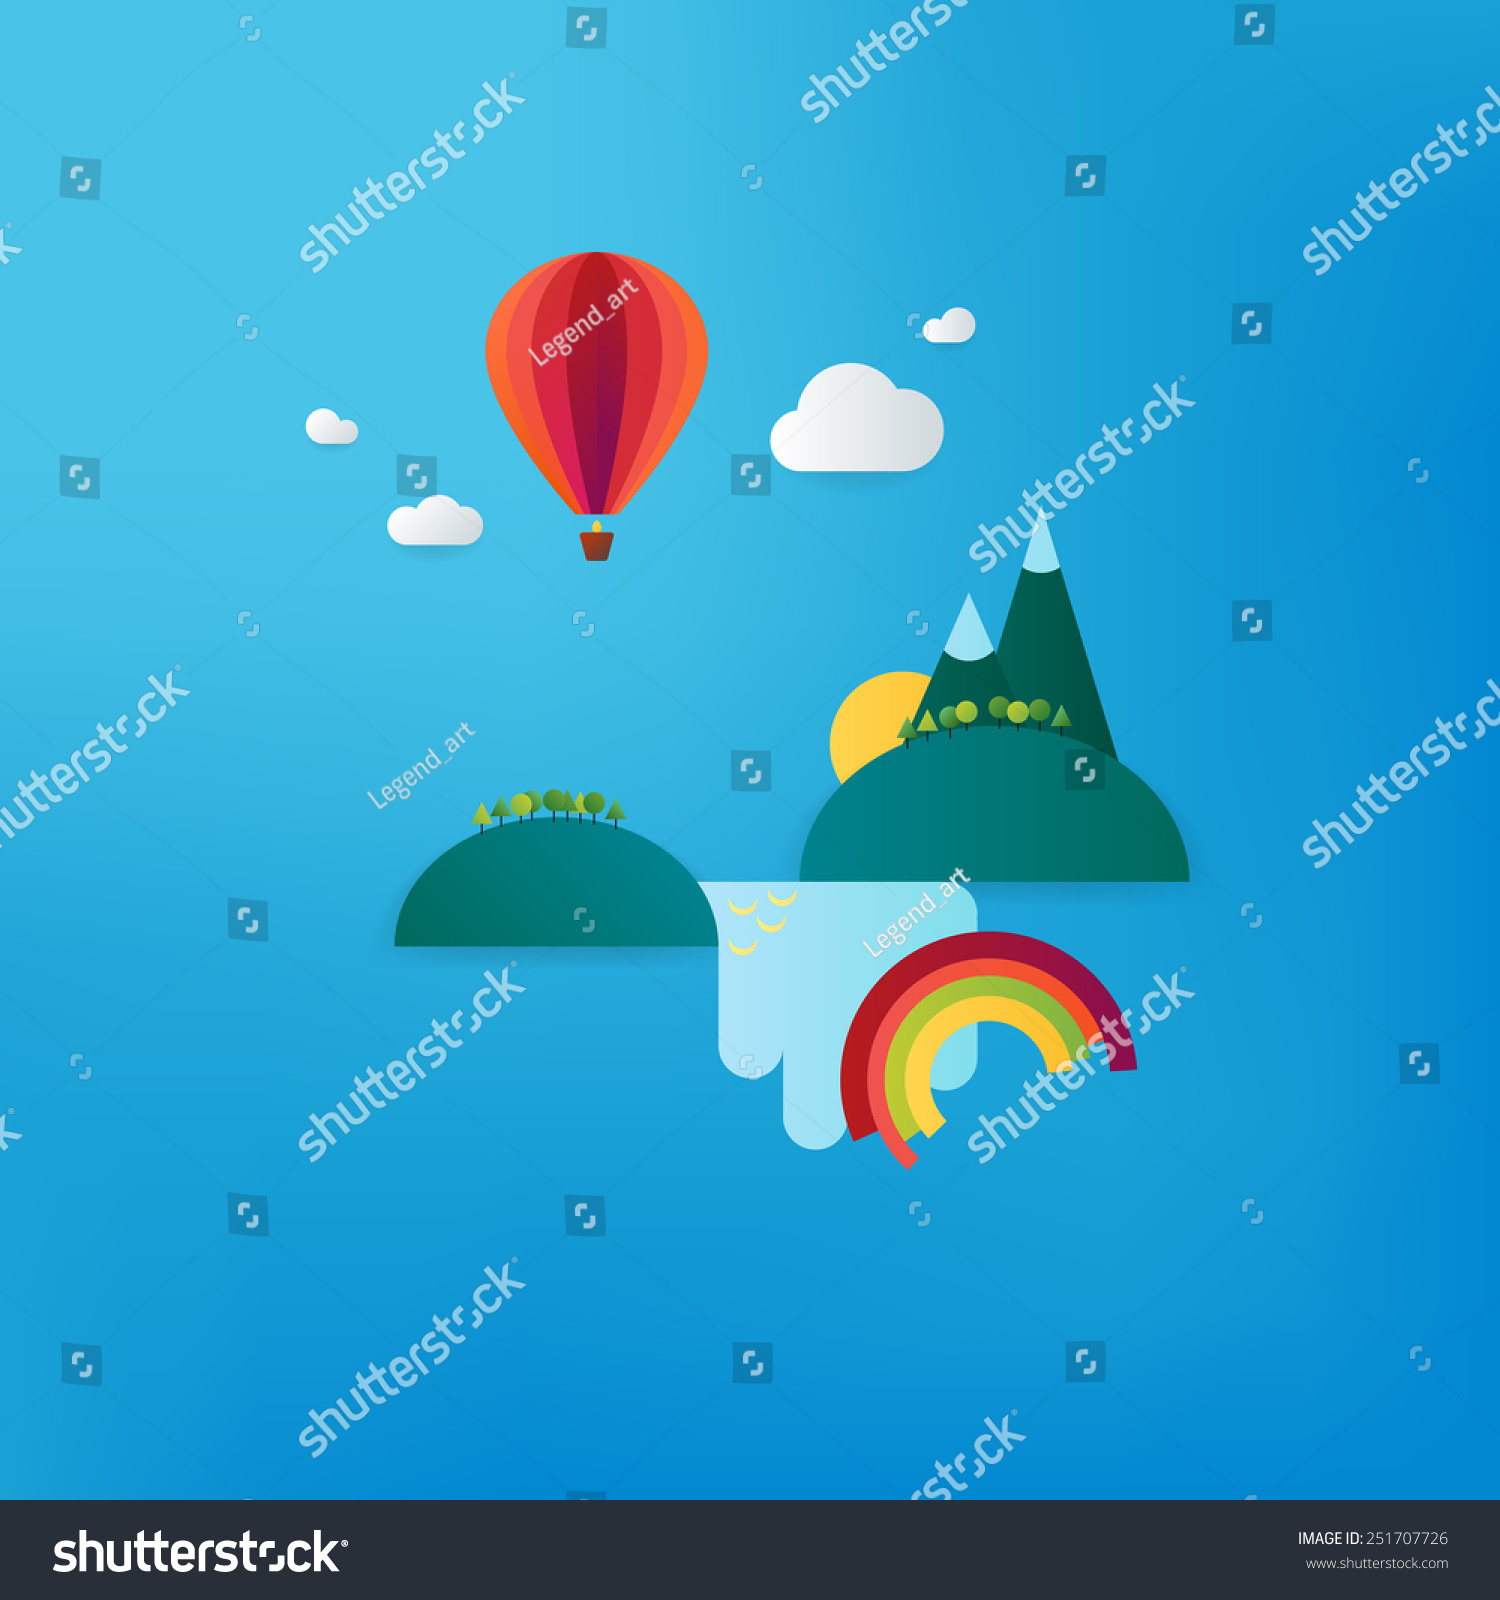 Minimalistic Travel Vacation Landscape With Balloon